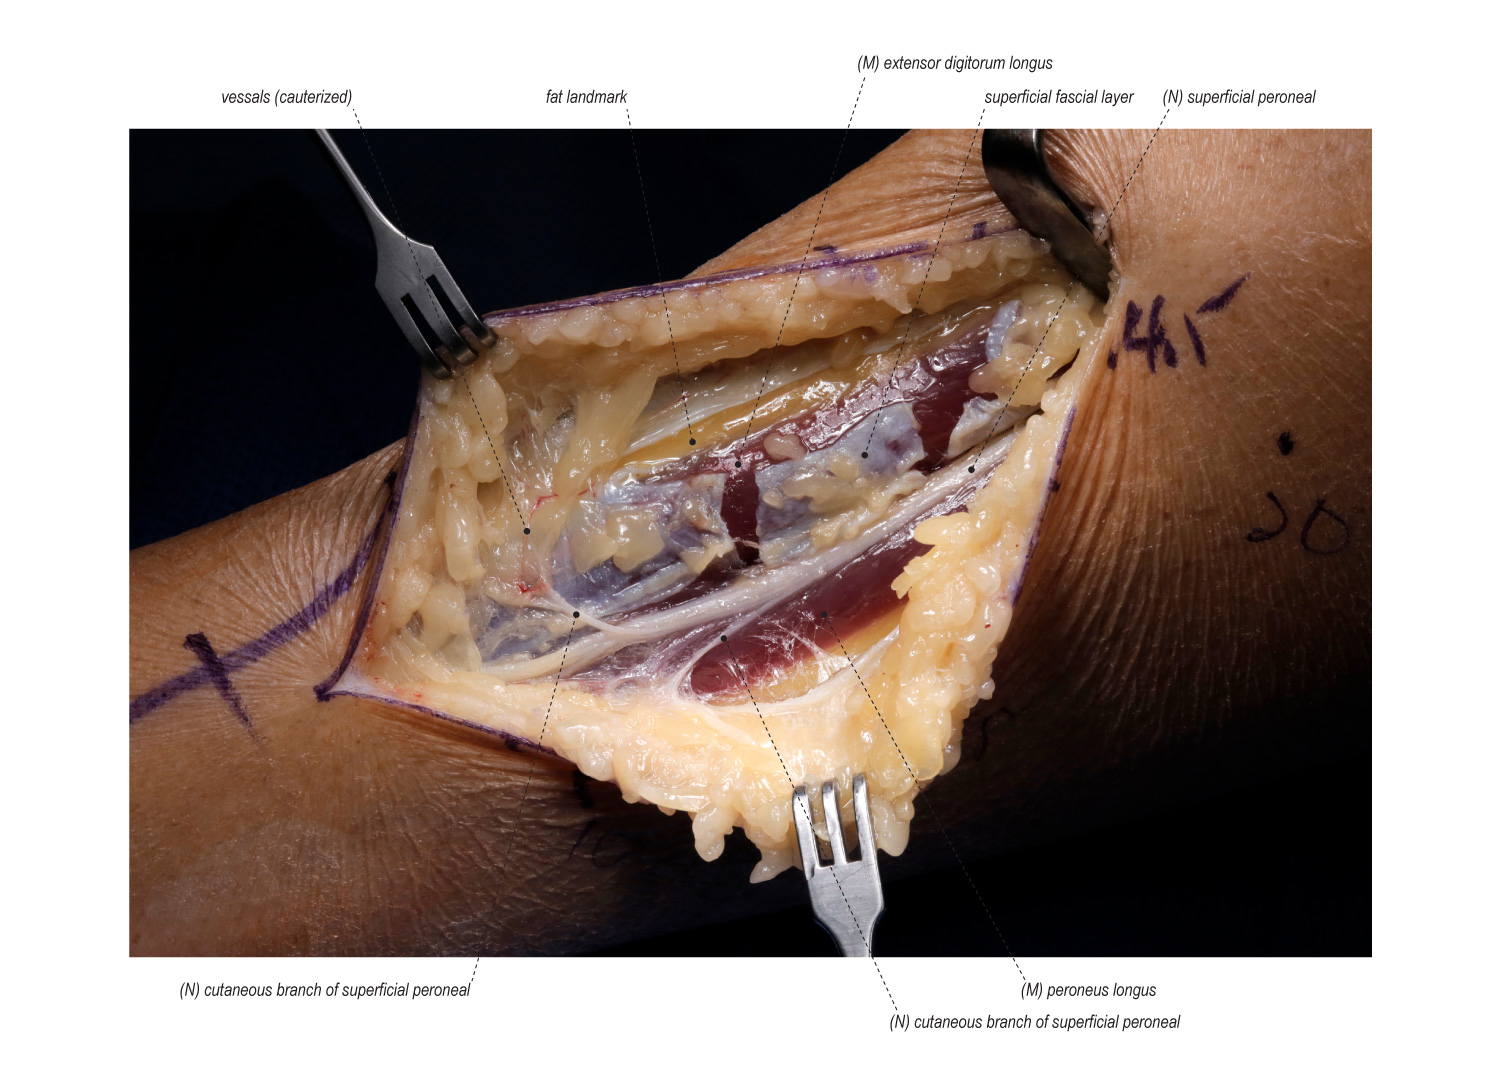 Superficial Peroneal Nerve Release in the Lower Leg | Surgical ...